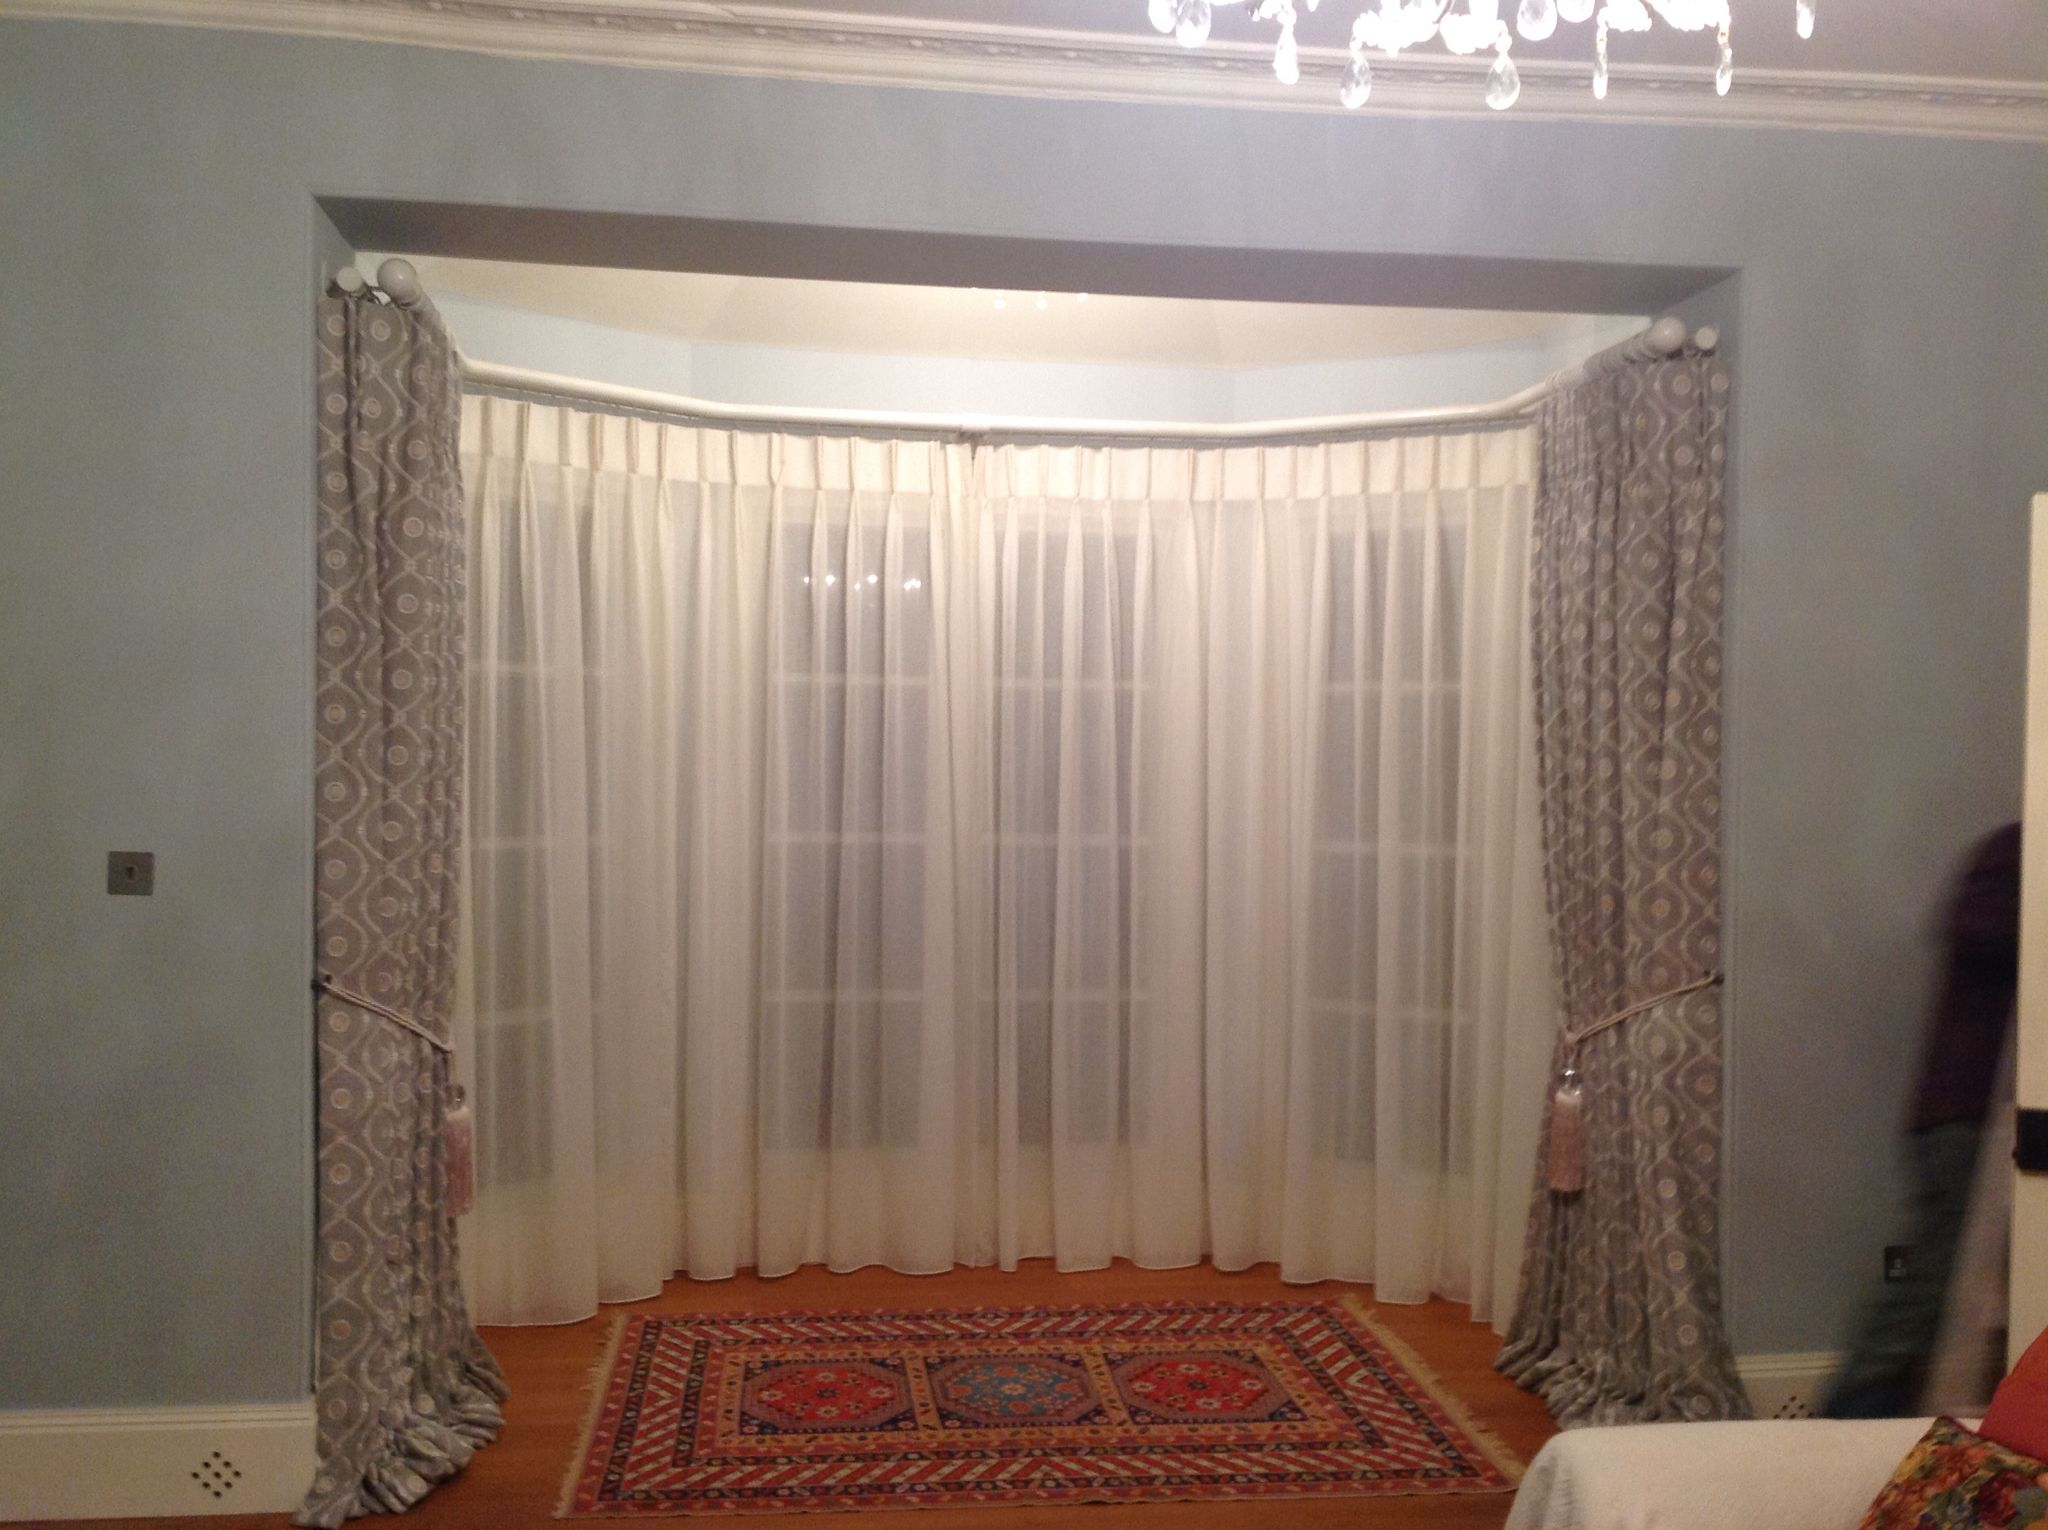 Double Curtain Pole For Four Bend Bay Window With Only Three Brackets Curtain Inspiration Bay Window Bay Window